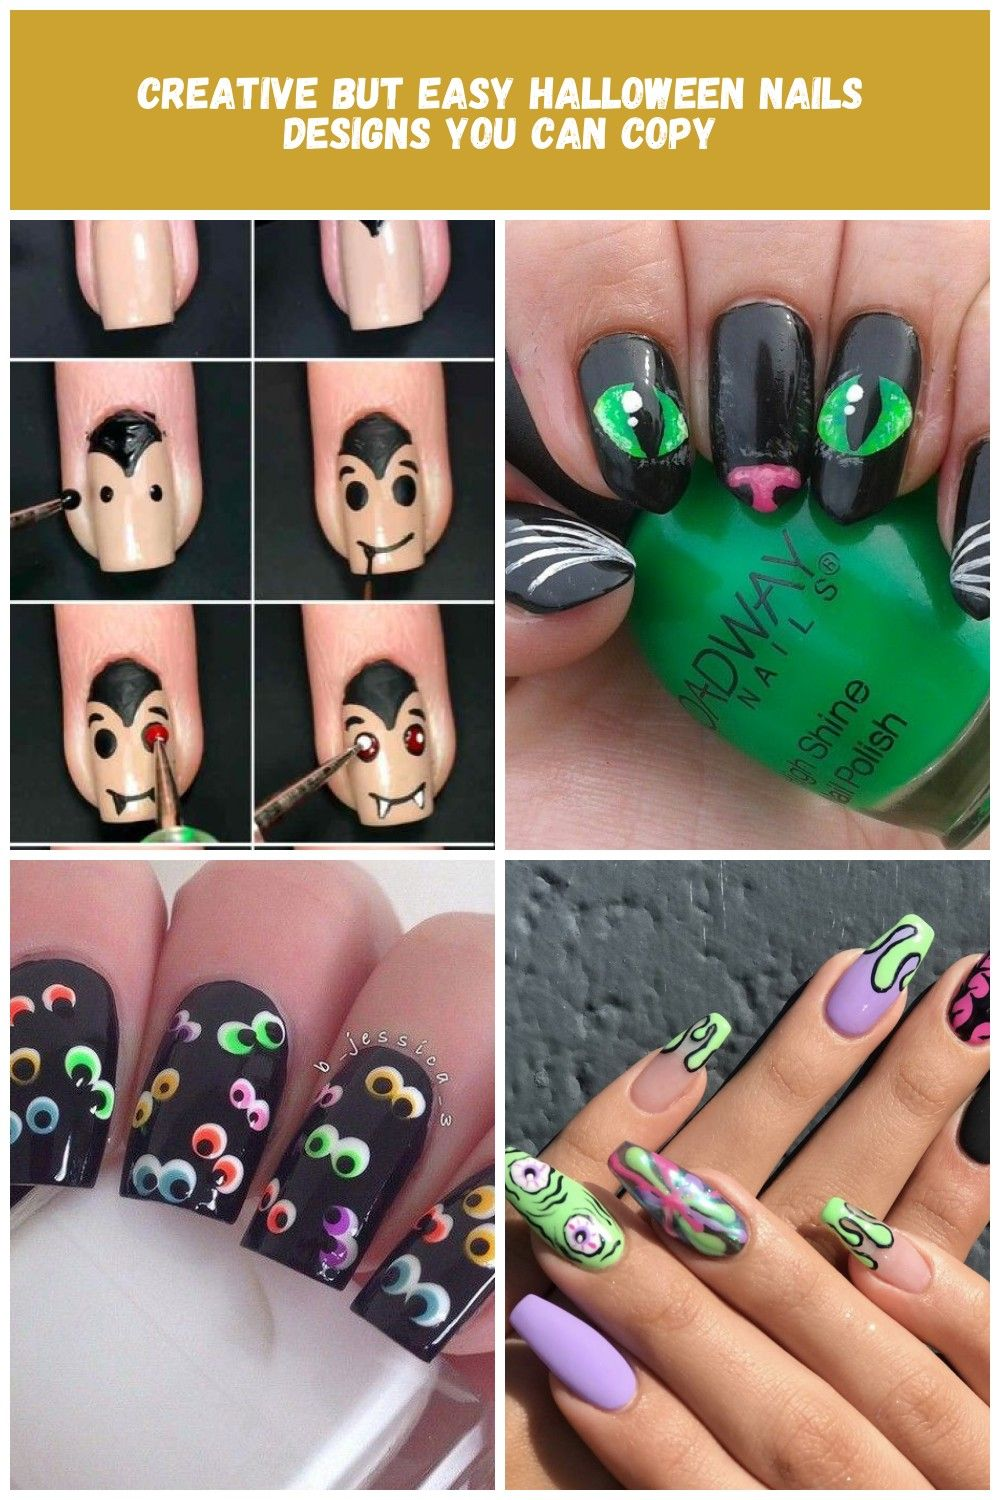 30 Creative But Easy Halloween Nails Designs You Can Copy Nail Designs Halloween Creati Halloween Nail Designs Halloween Nails Easy Easy Halloween Nails Design